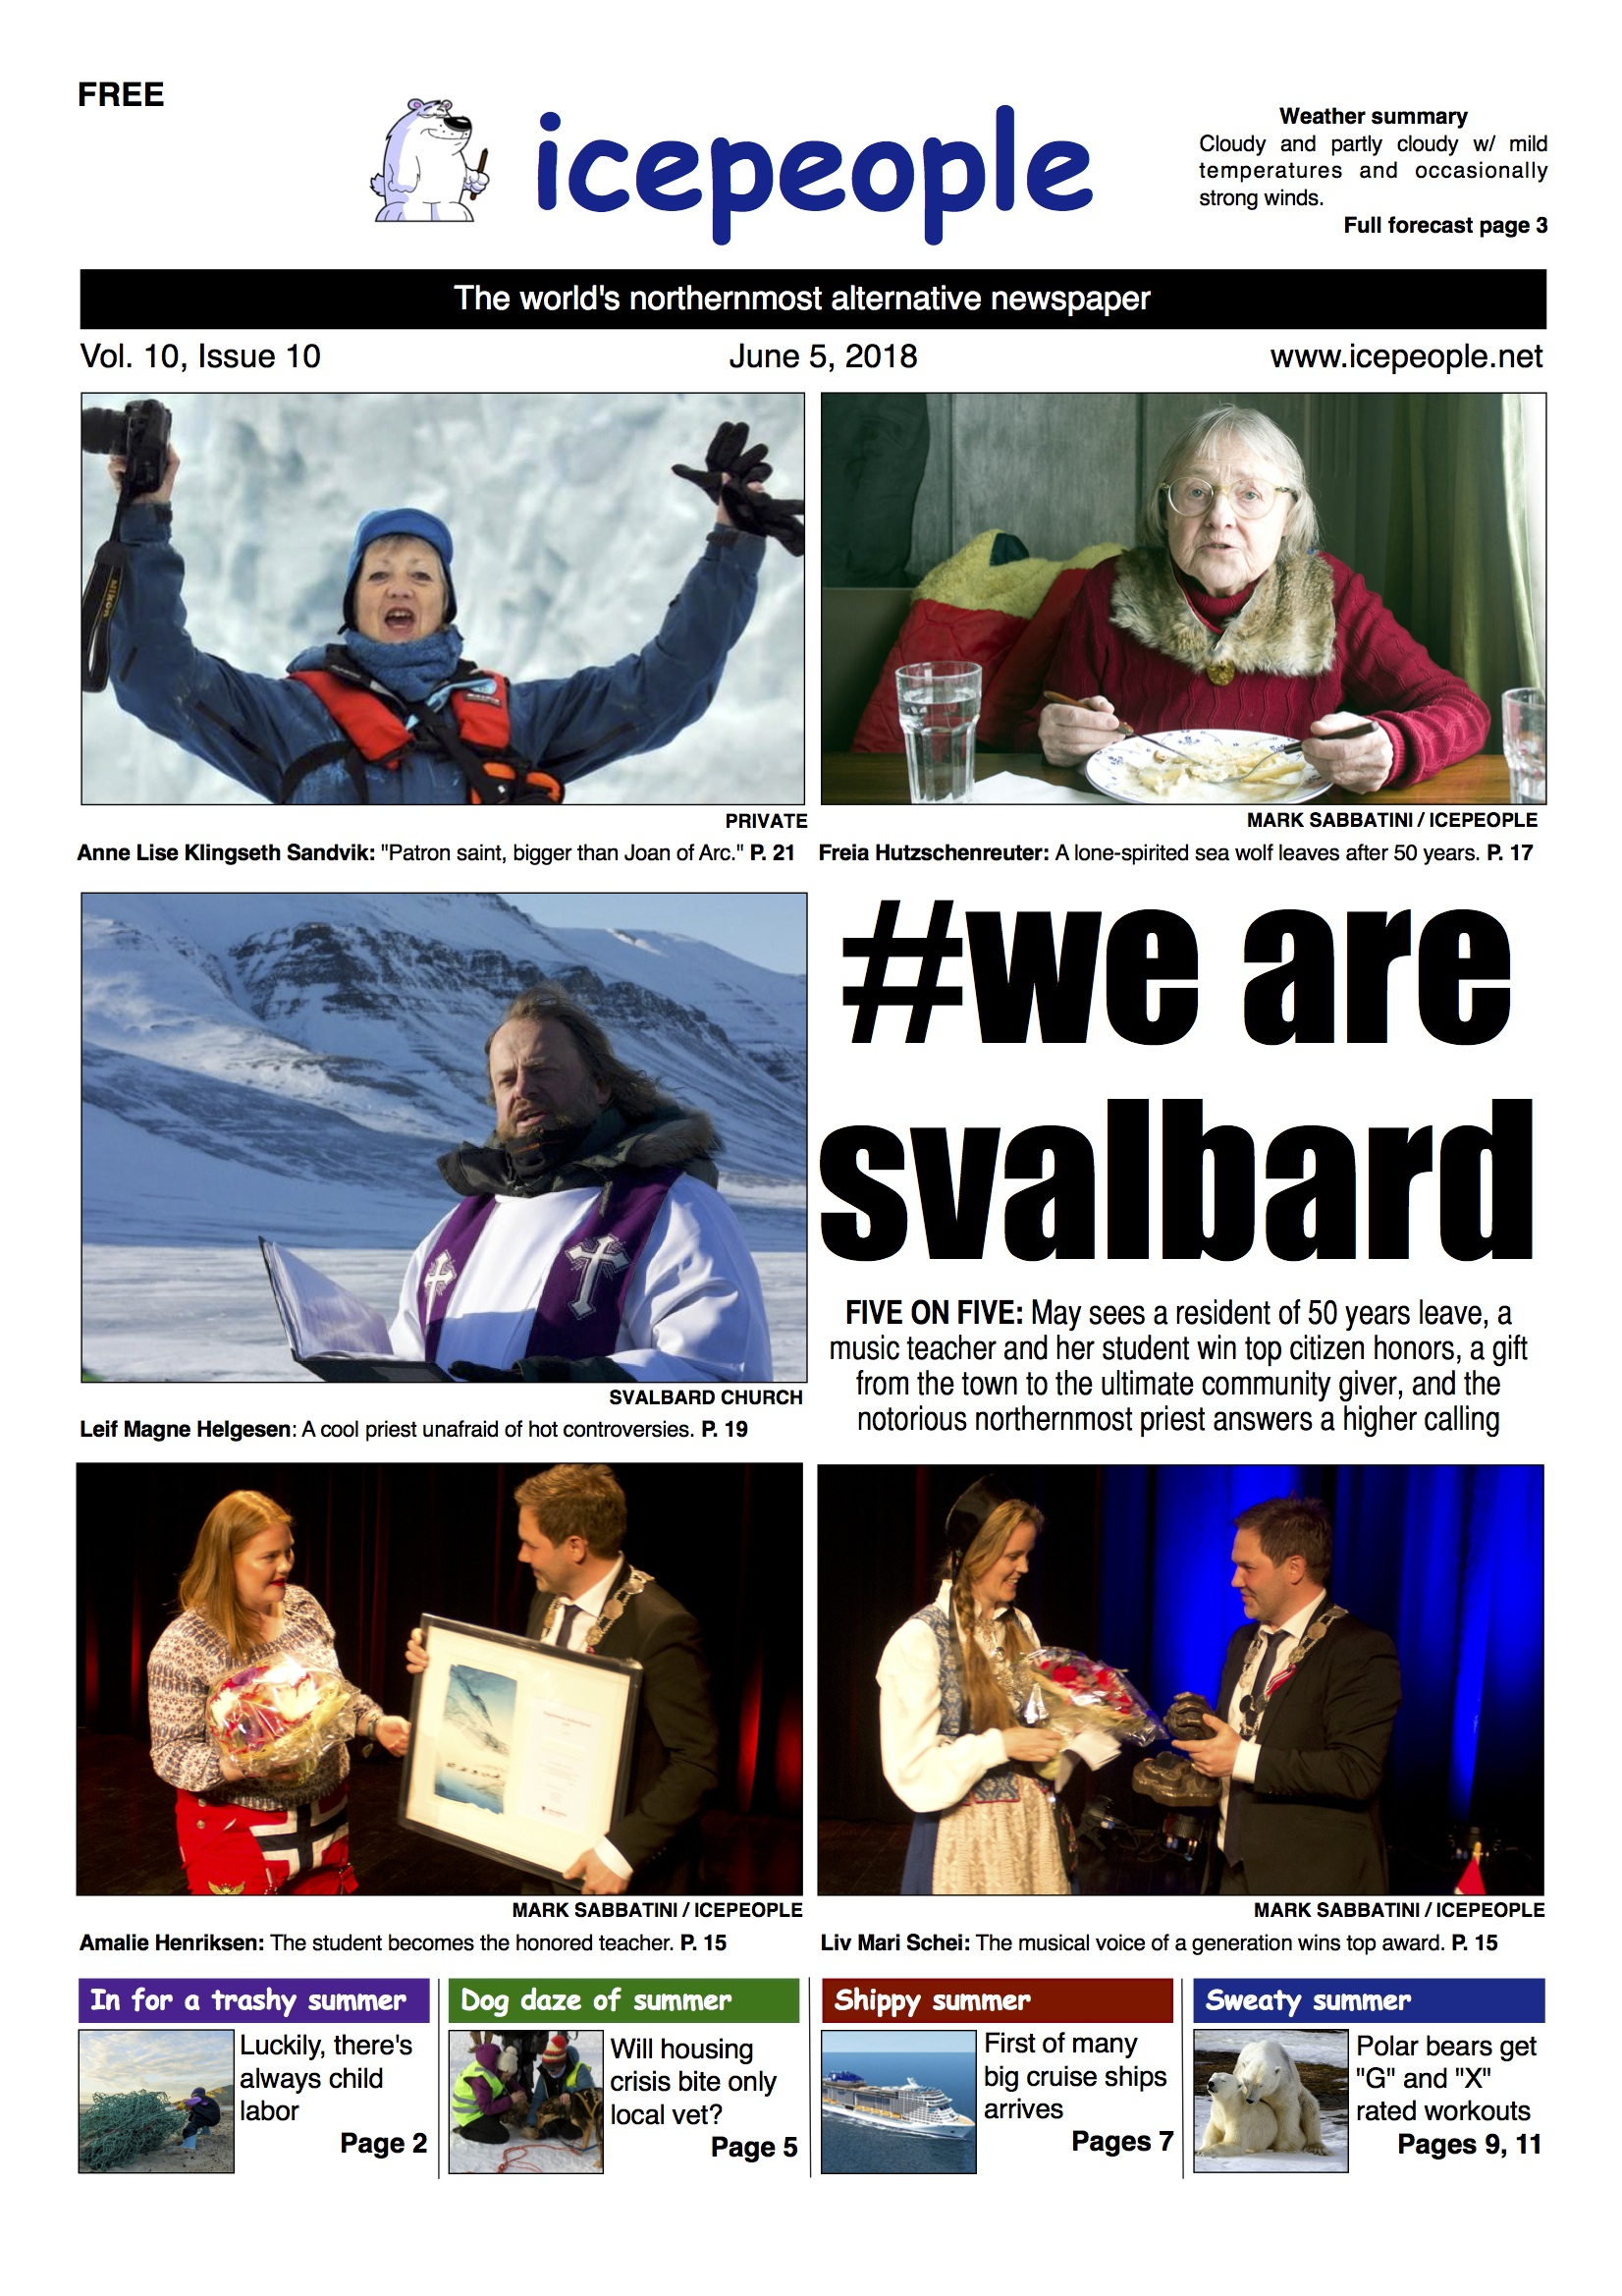 Biggest fish tale ever: This week's Icepeople is a record 28 pages and very personal; incredible people and incredible happenings capture everything awesome about Svalbard